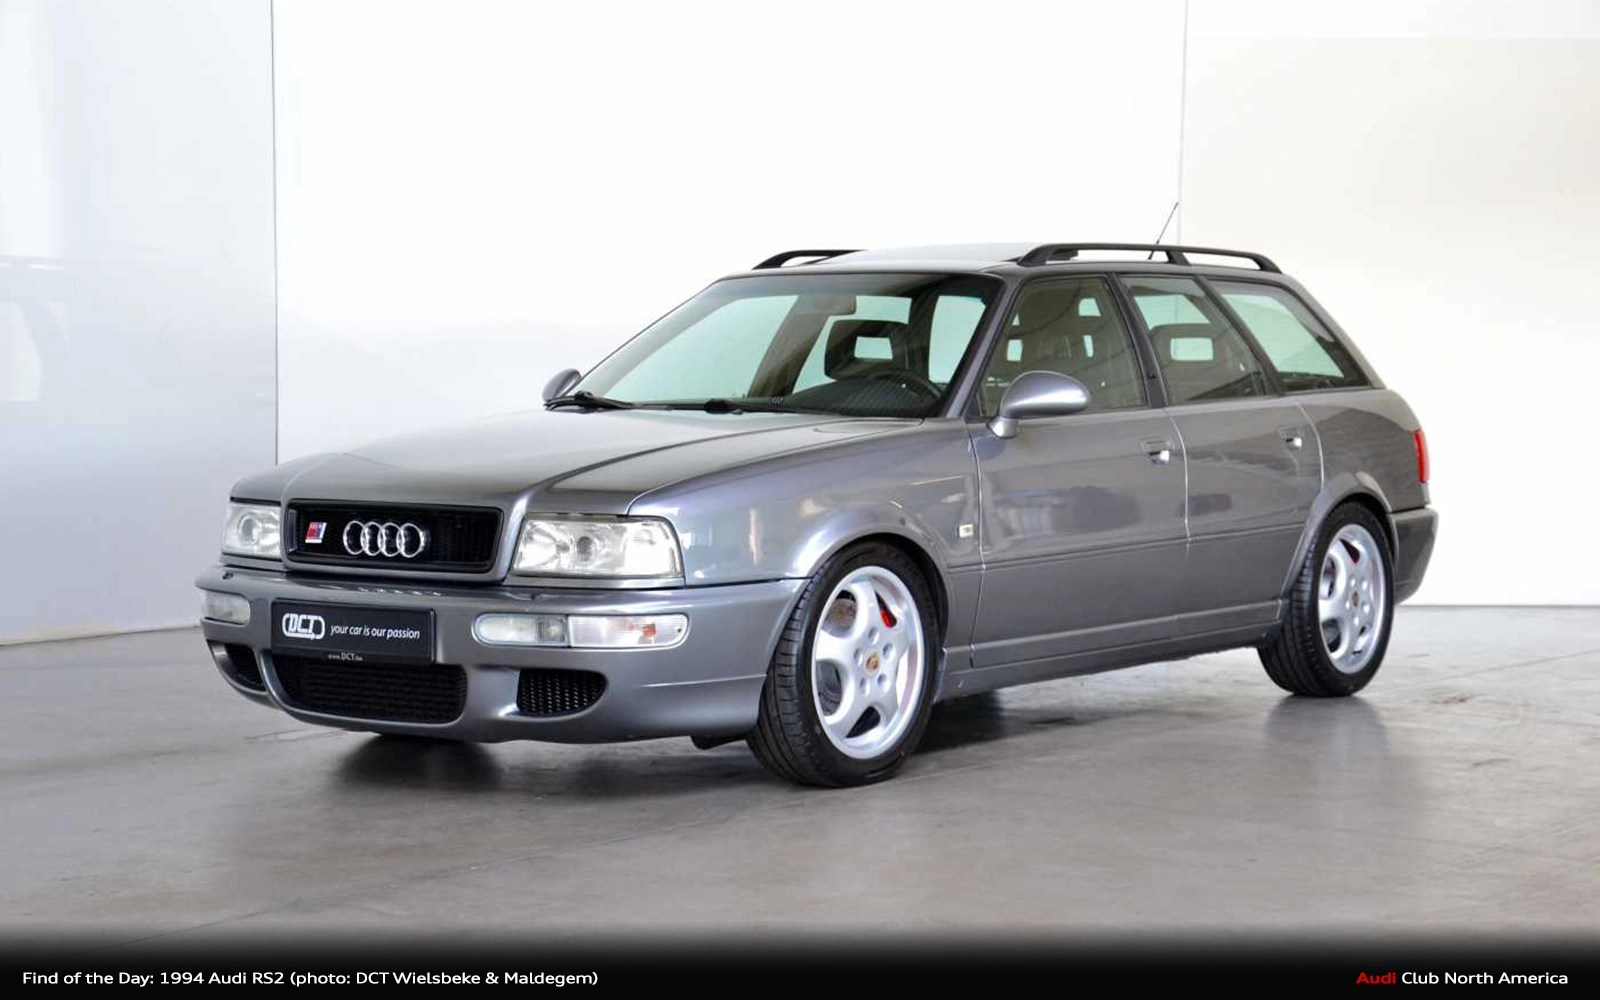 Find Of The Day 1994 Audi Rs2 Audi Club North America